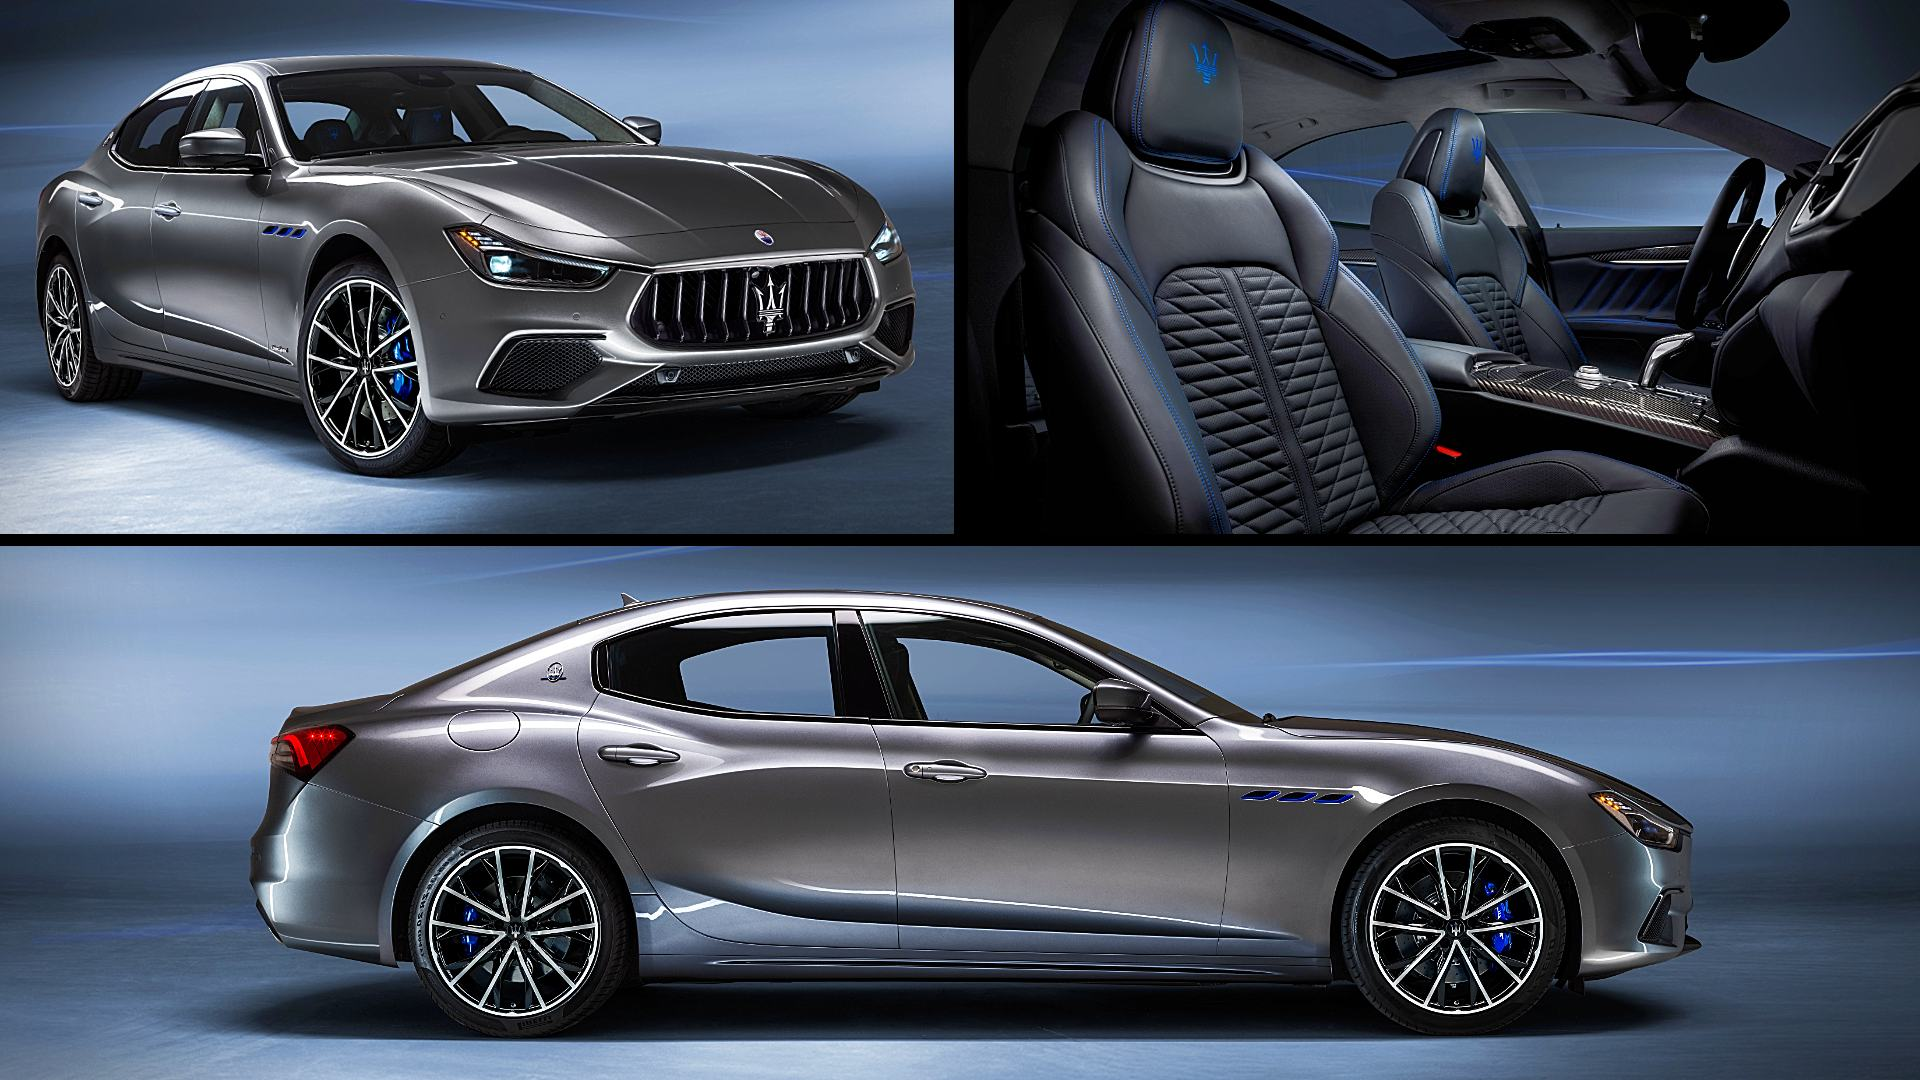 2021 Maserati Ghibli Hybrid GranSport Sedan Images